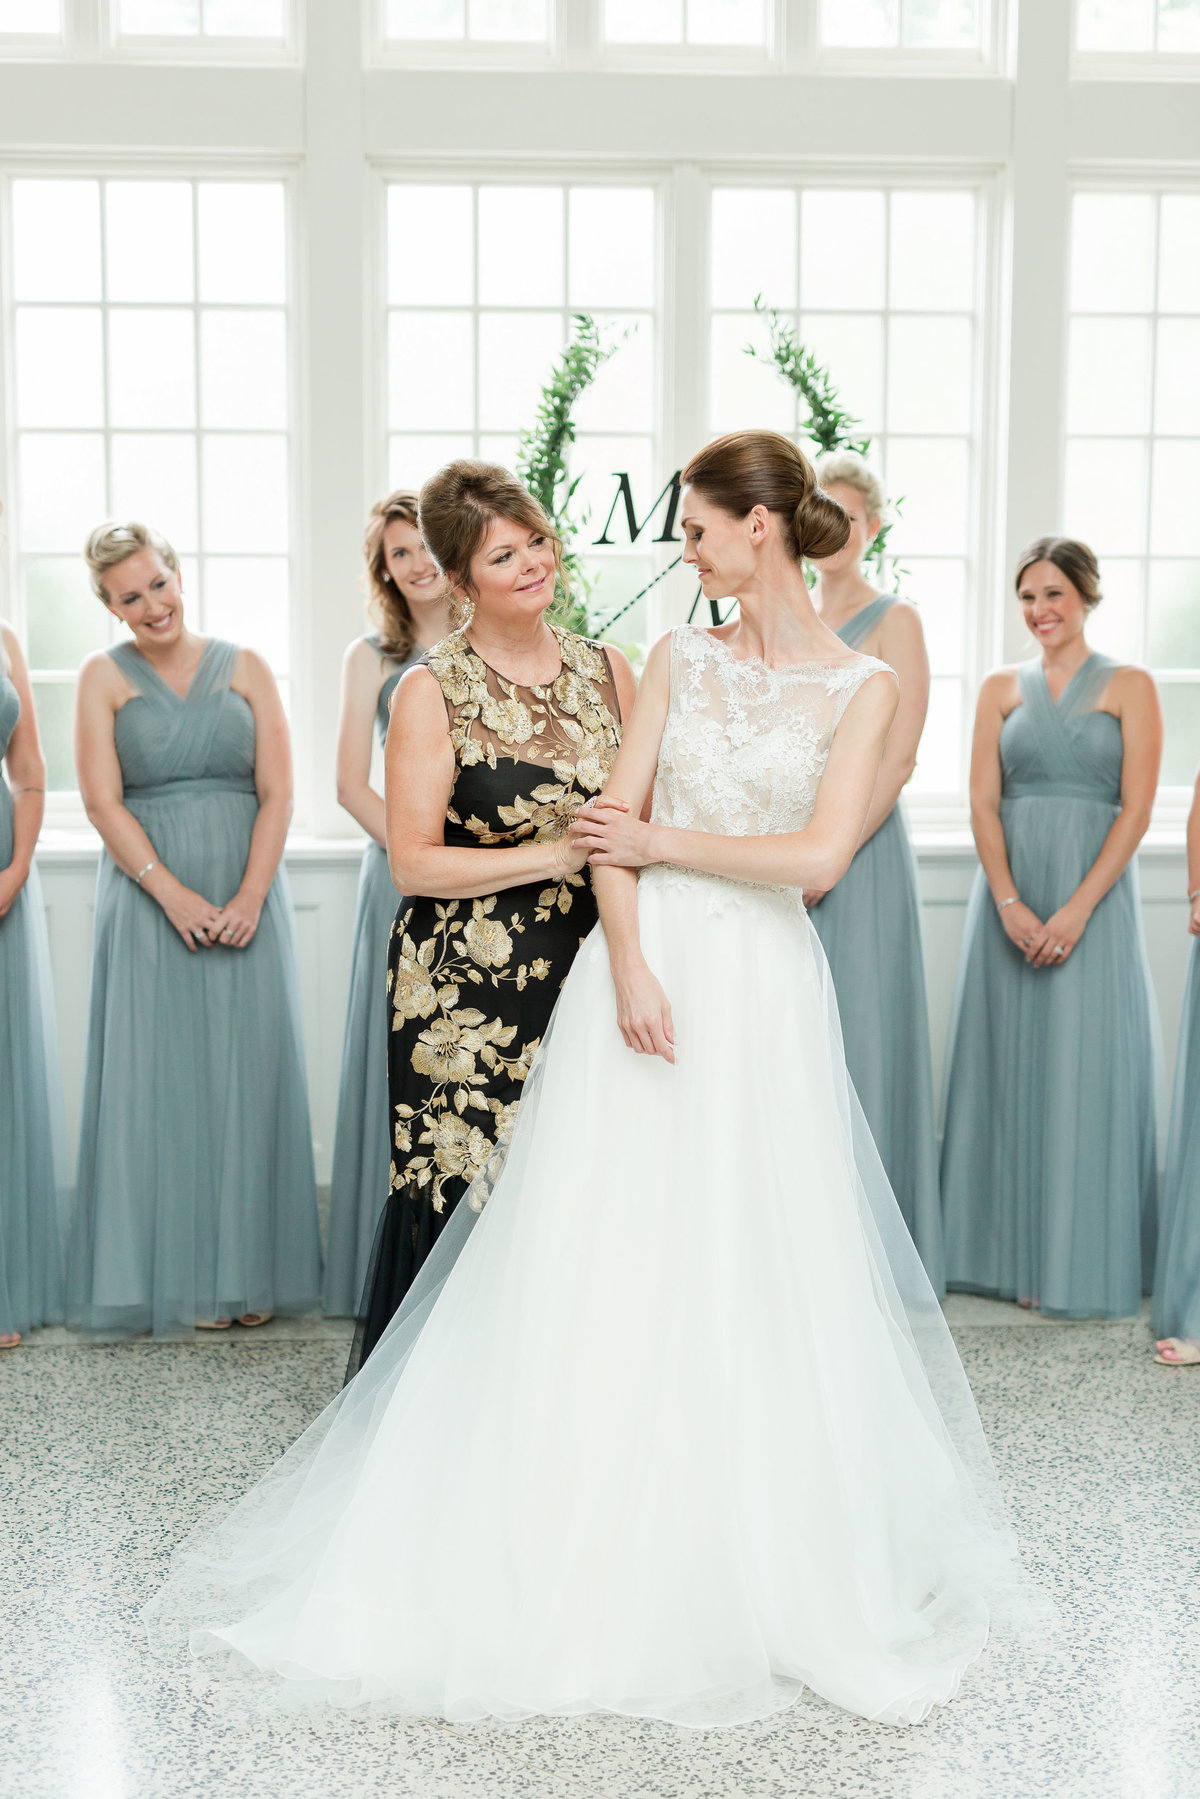 Maison Meredith Photography Wisconsin Wedding Photographer Real Wedding One 010